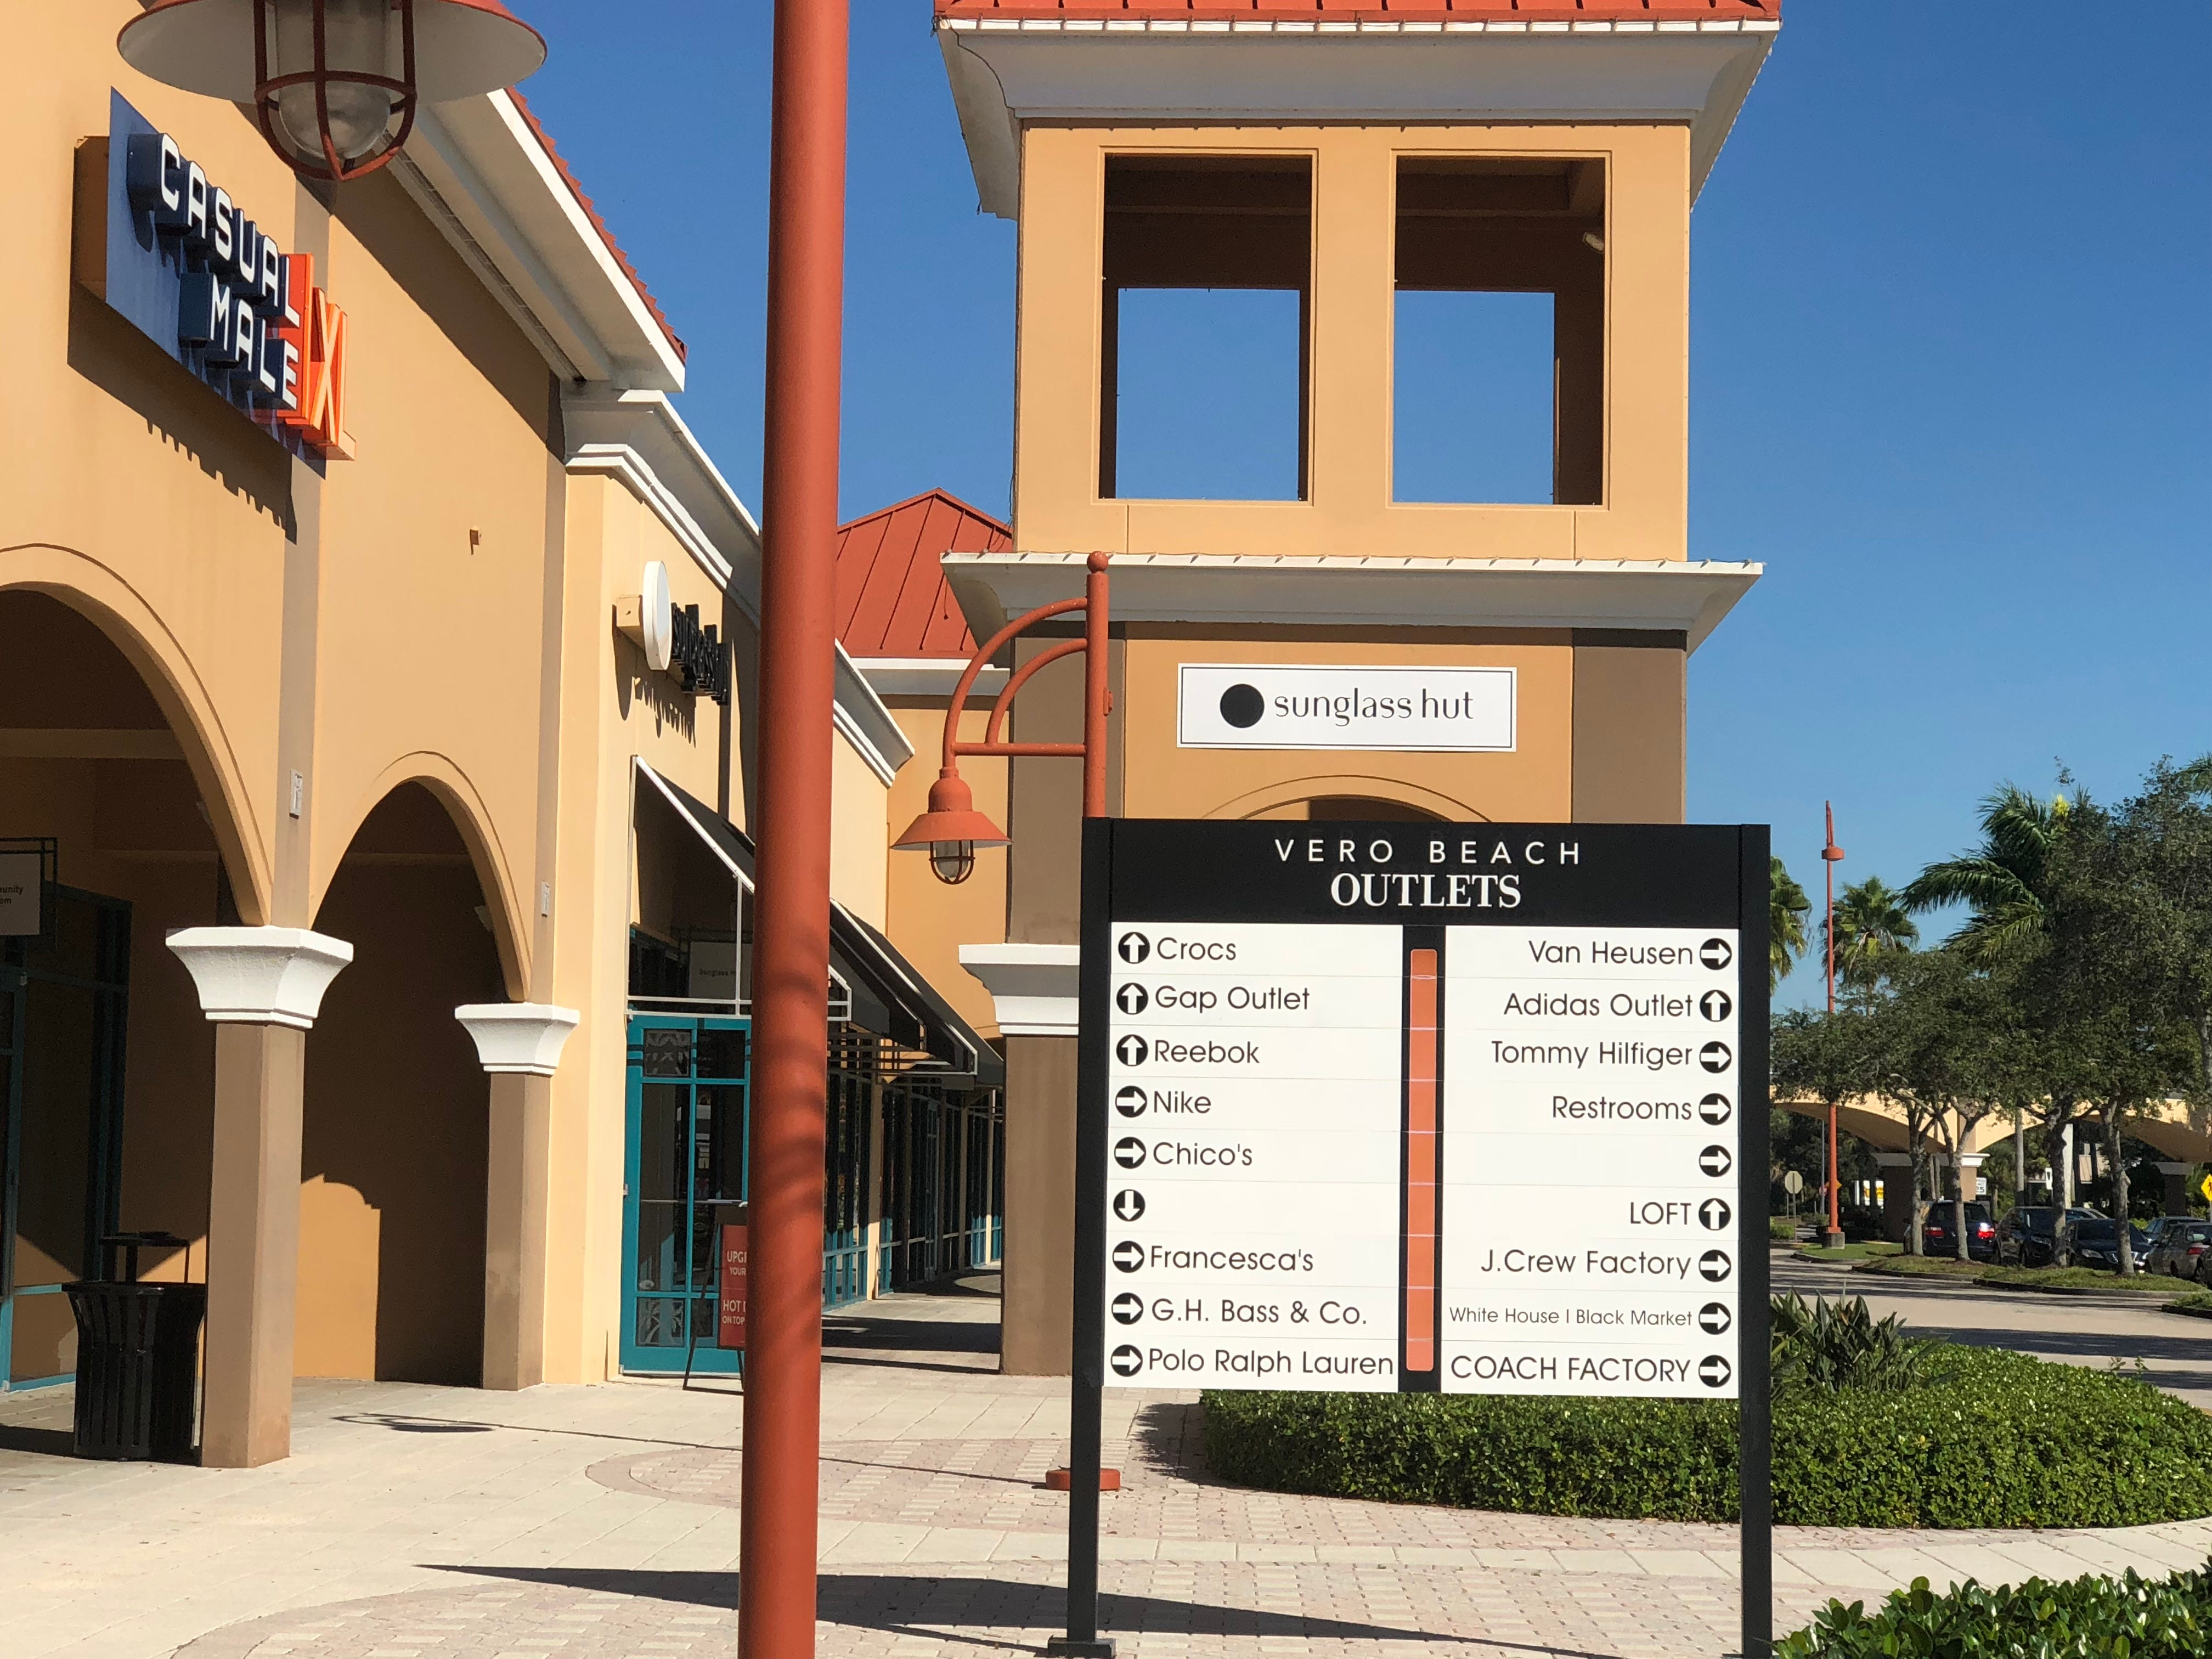 Find Out About Outlet Hours, Events, Coupons, Stores and Driving Directions